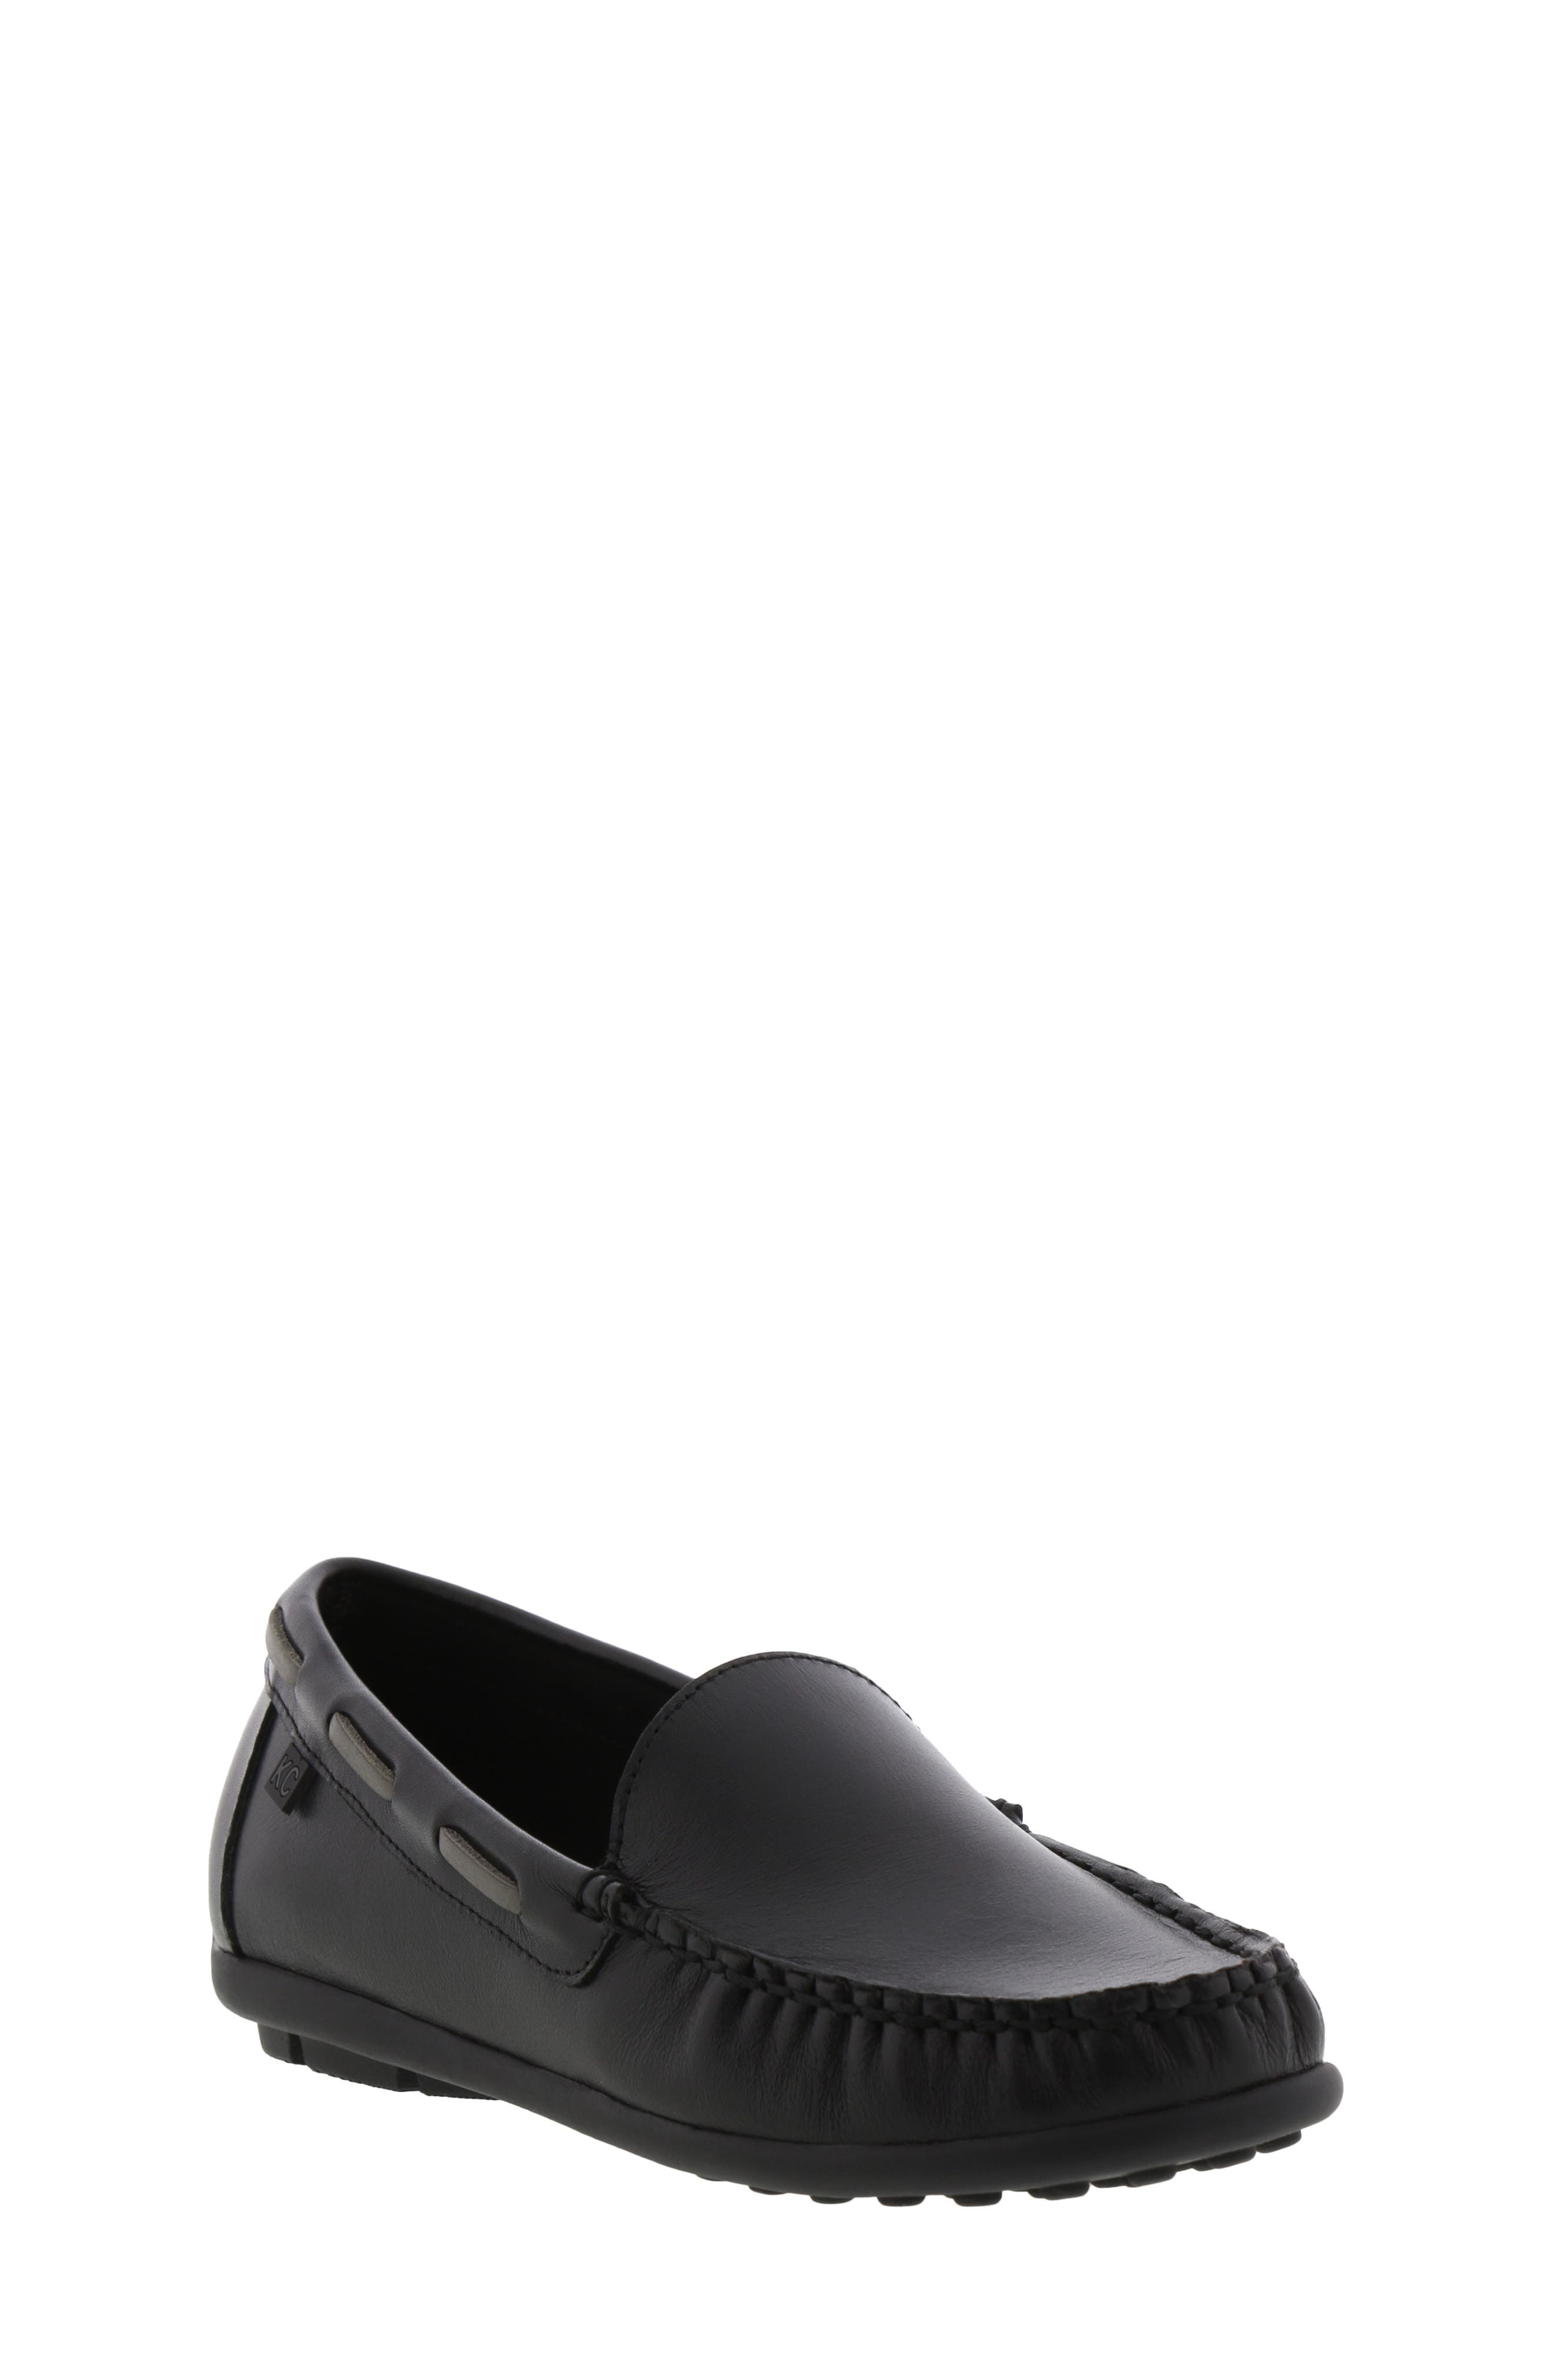 REACTION KENNETH COLE Helio Shift Driving Moccasin, Main, color, BLACK SMOOTH